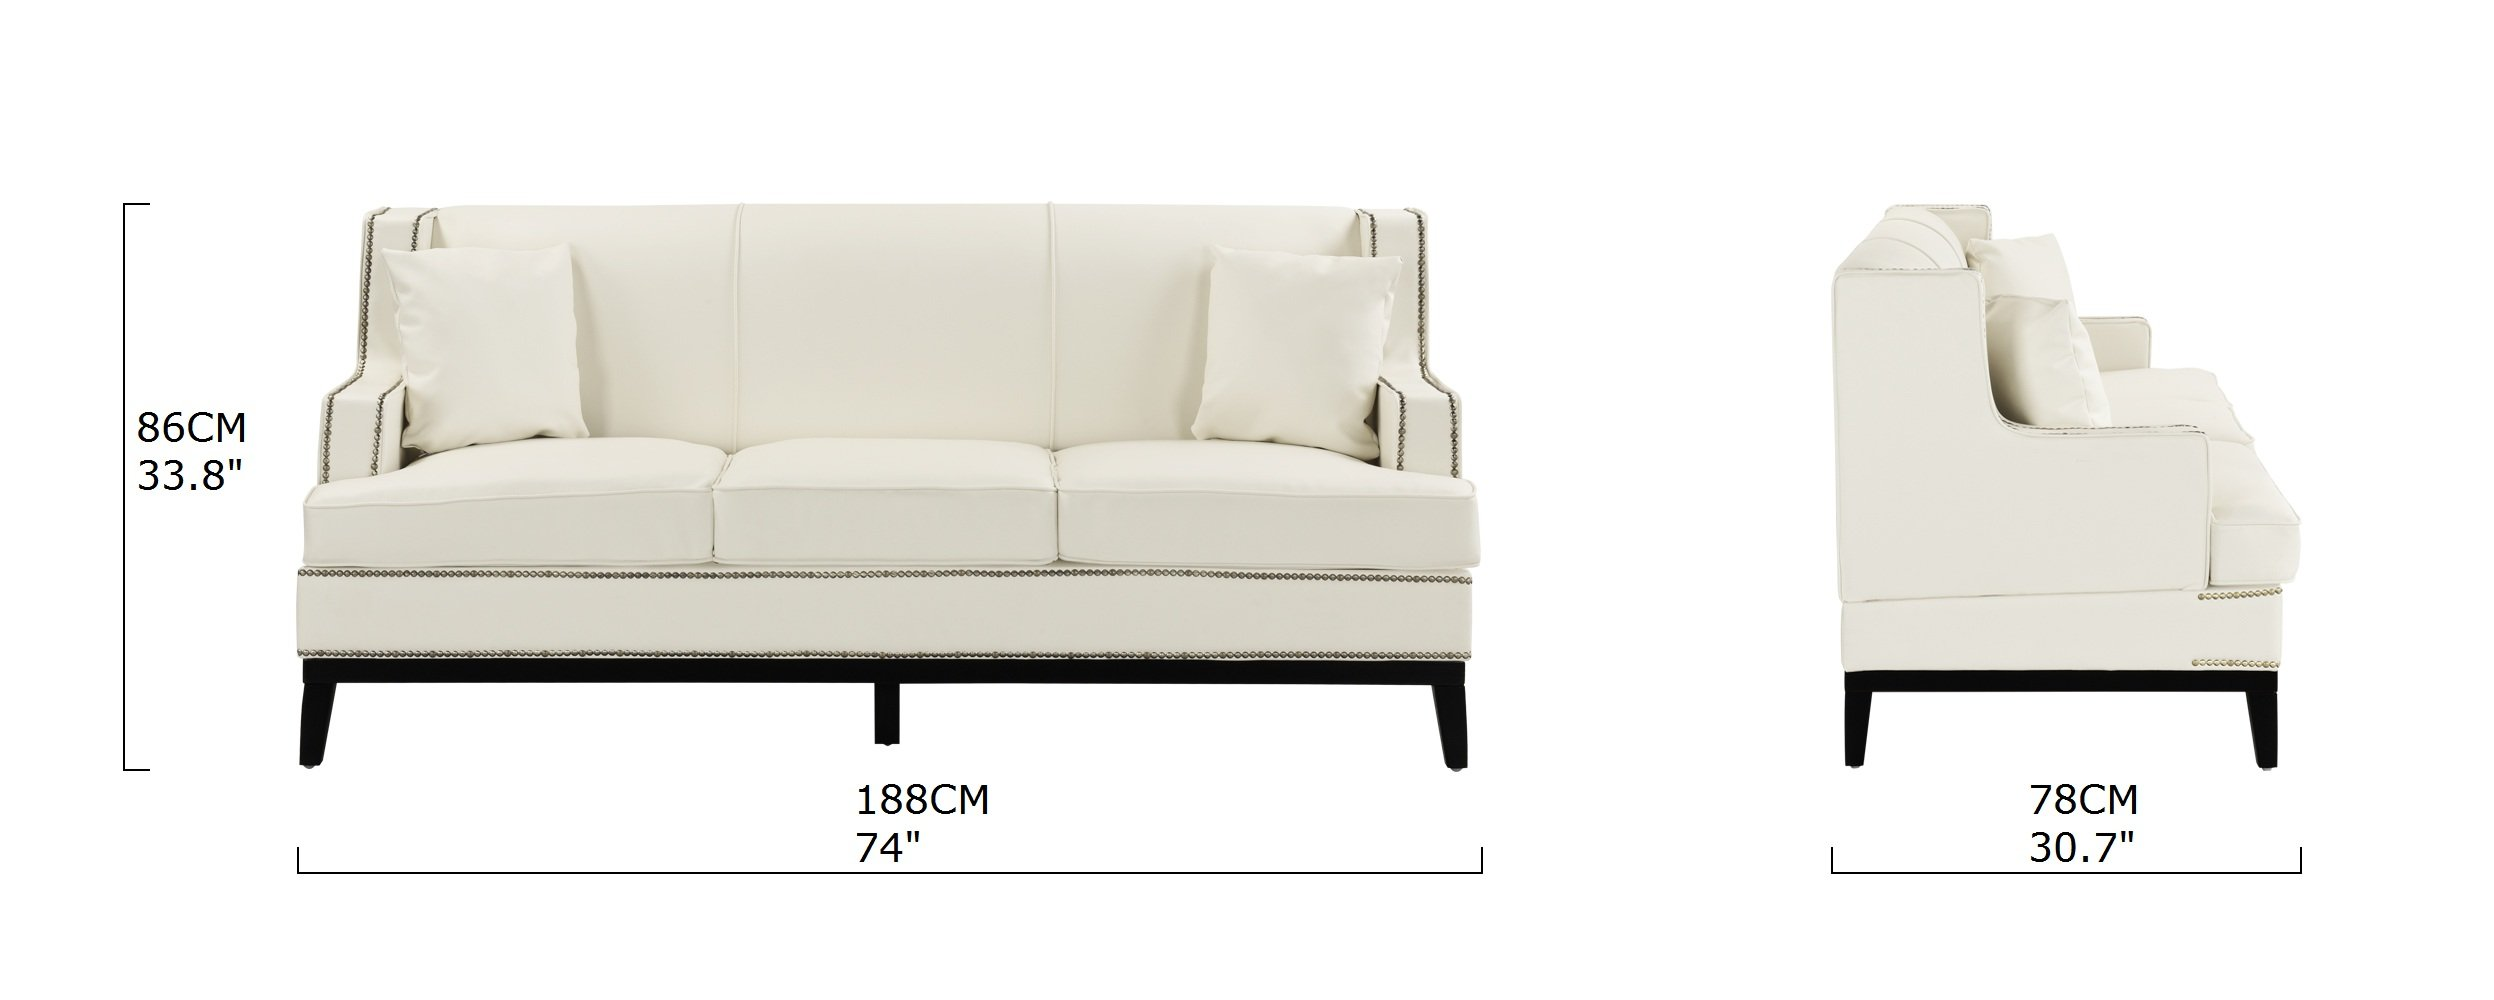 Sensational Details About White Contemporary Modern Bonded Leather Sofa With Nailhead Trim Wooden Frame Gamerscity Chair Design For Home Gamerscityorg